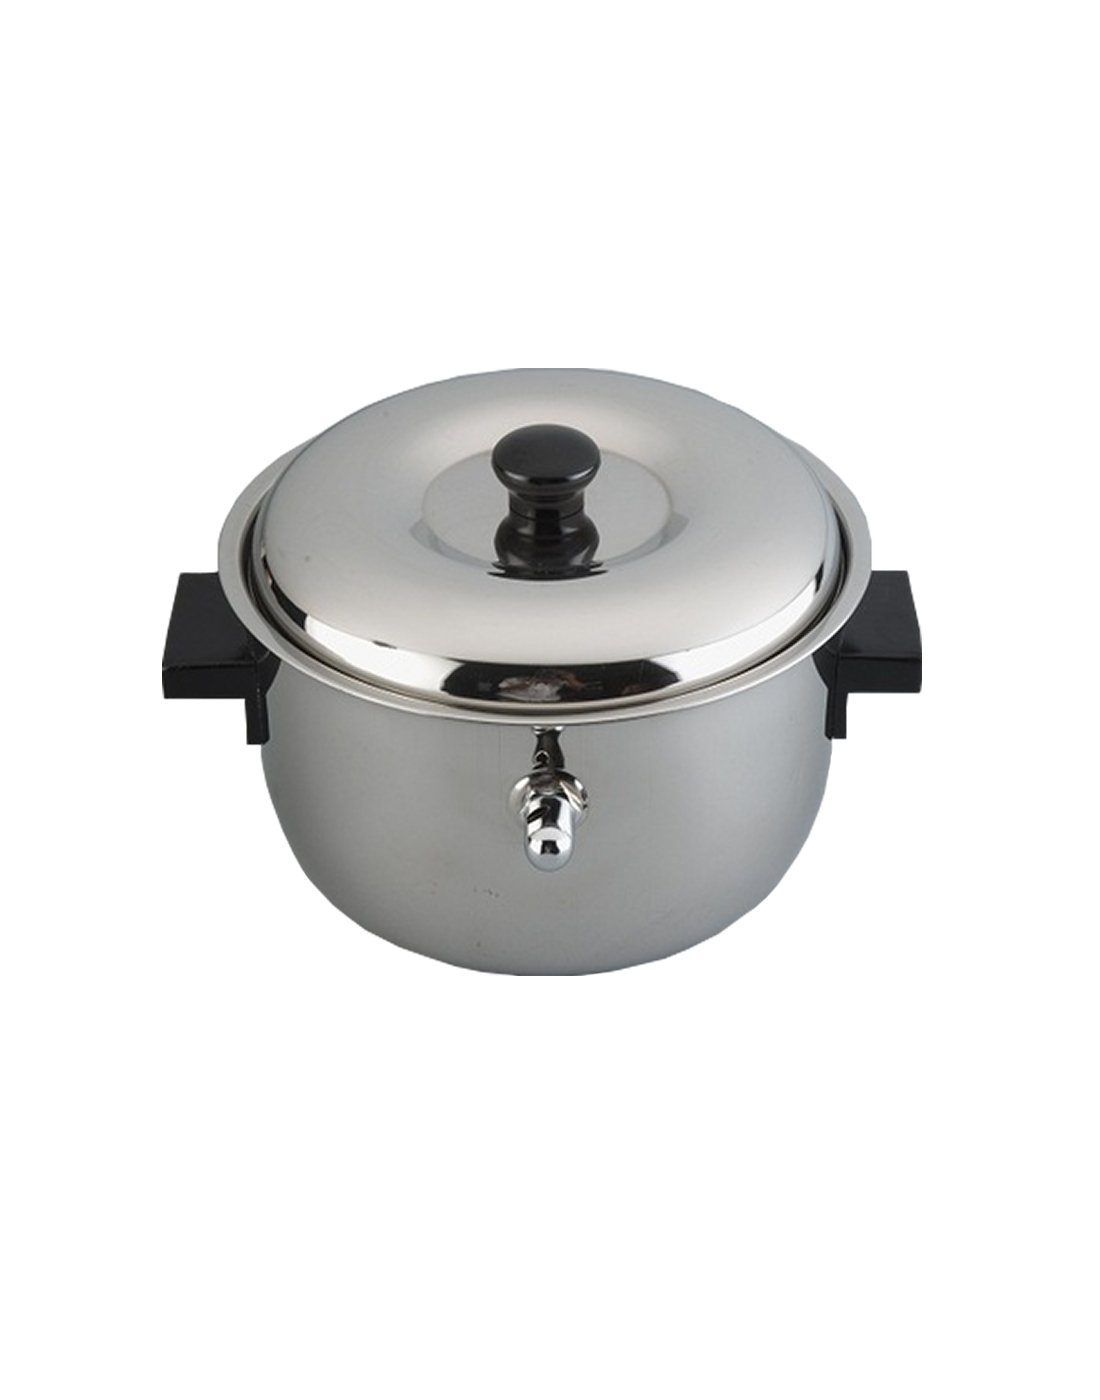 Anantha Stainless steel milk boiler, 1.5 litre by Anantha Anantha SS milk 1.5 L